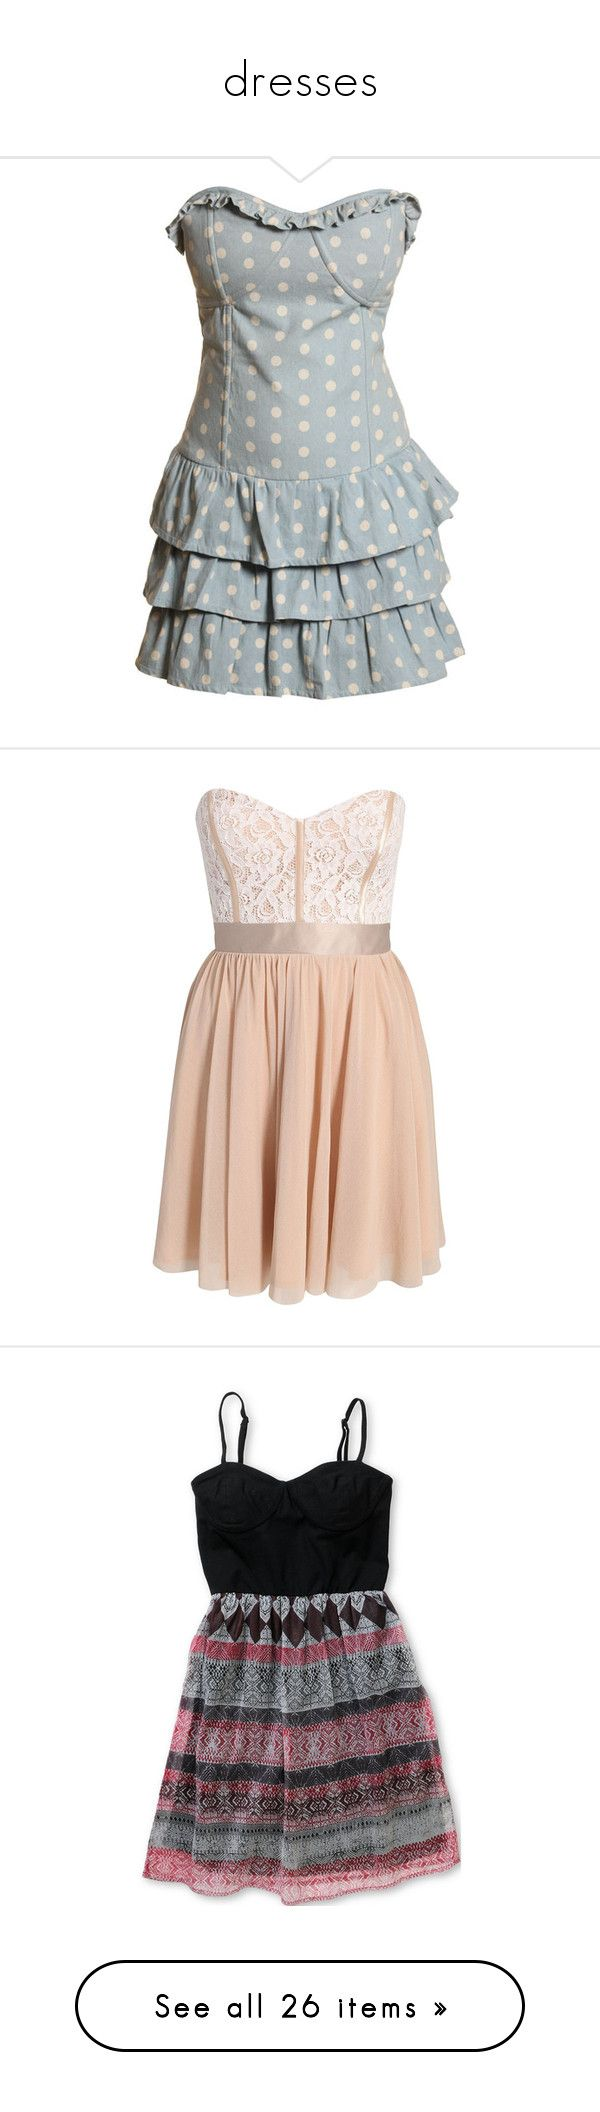 """dresses"" by neoncupcake ❤ liked on Polyvore featuring dresses, vestidos, short dresses, vestiti, boohoo dresses, mini dress, robes, party dresses, beige and see through dress"